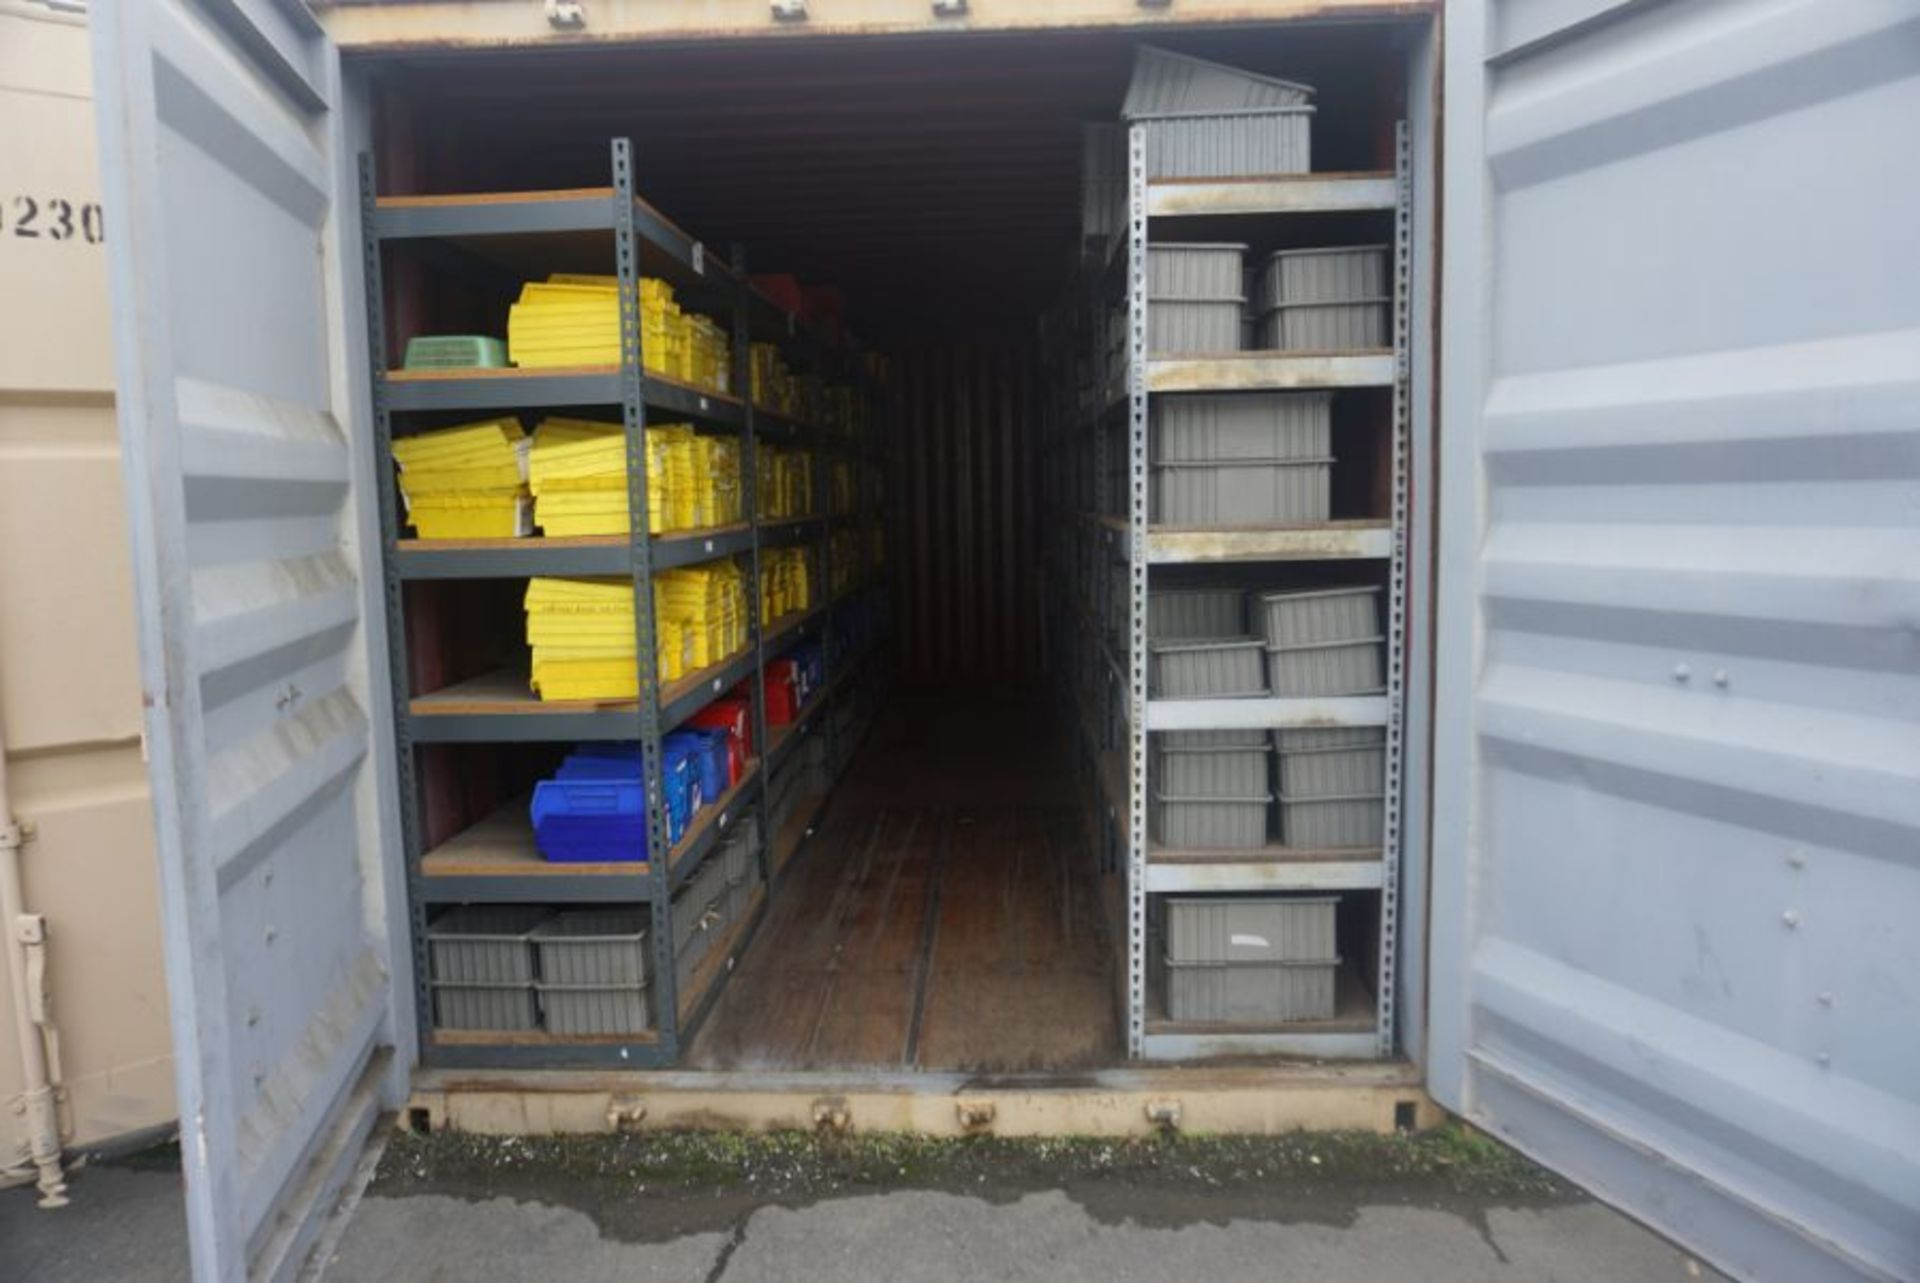 Lot 92 - 20' x 8' x 6.5' Shipping Container with Racking